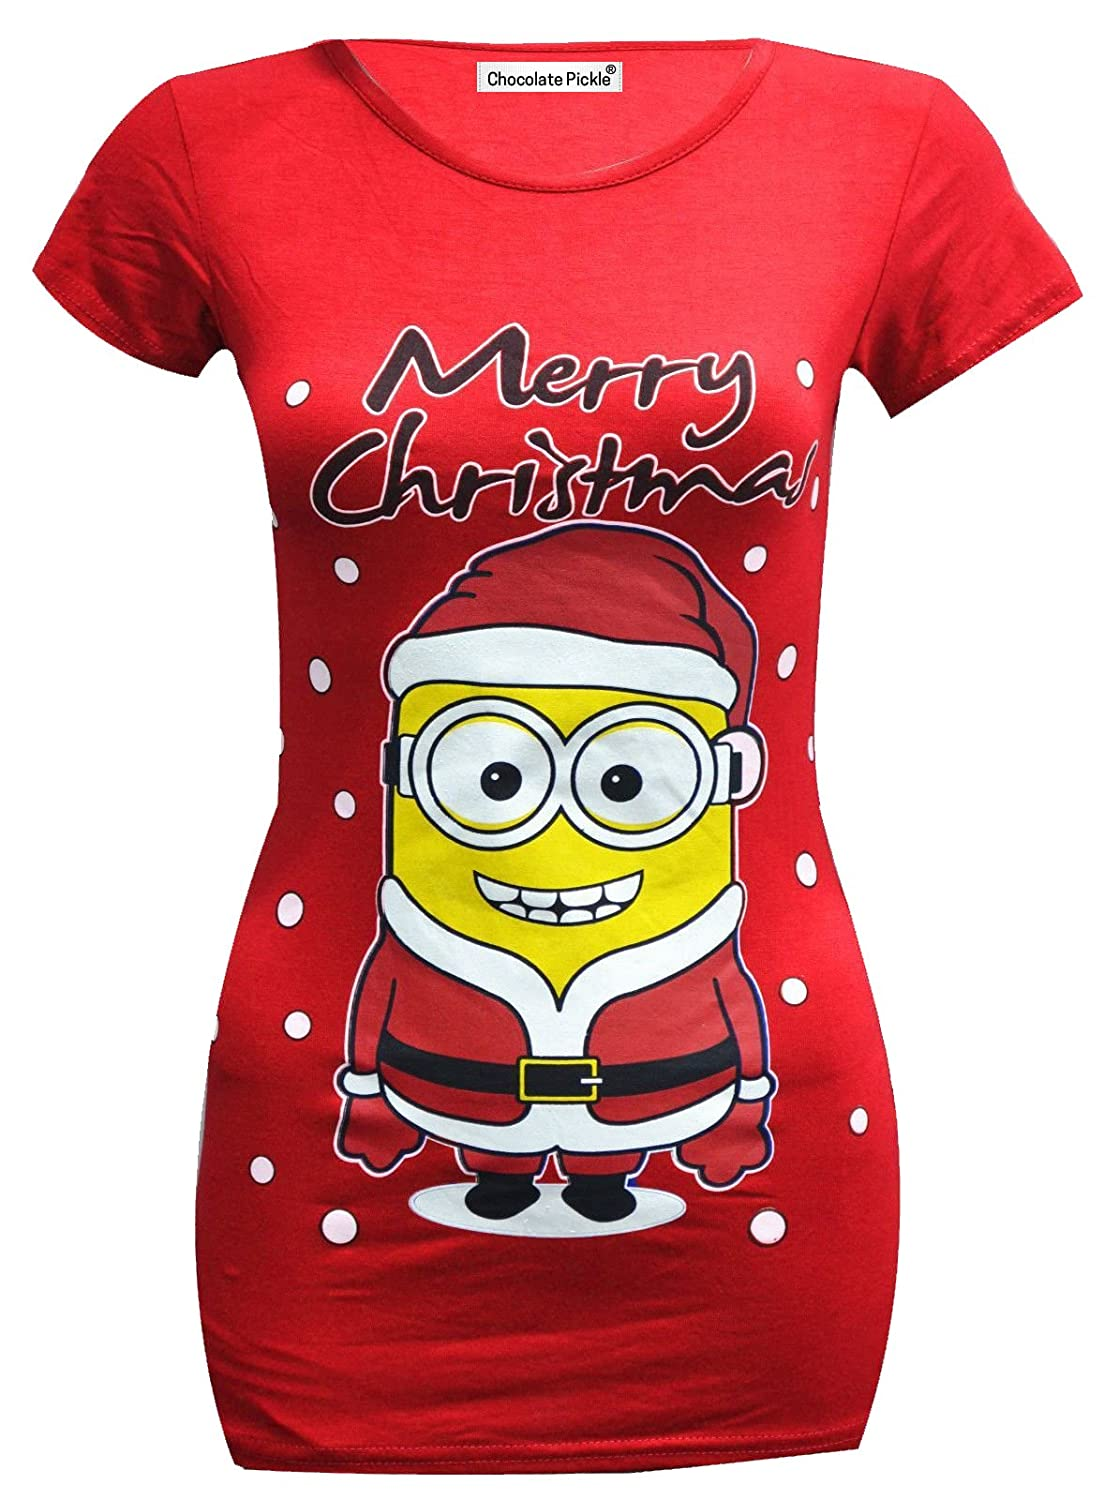 new womens christmas print stretch t shirts tops 4 16 at amazon womens clothing store - Minion Christmas Shirt